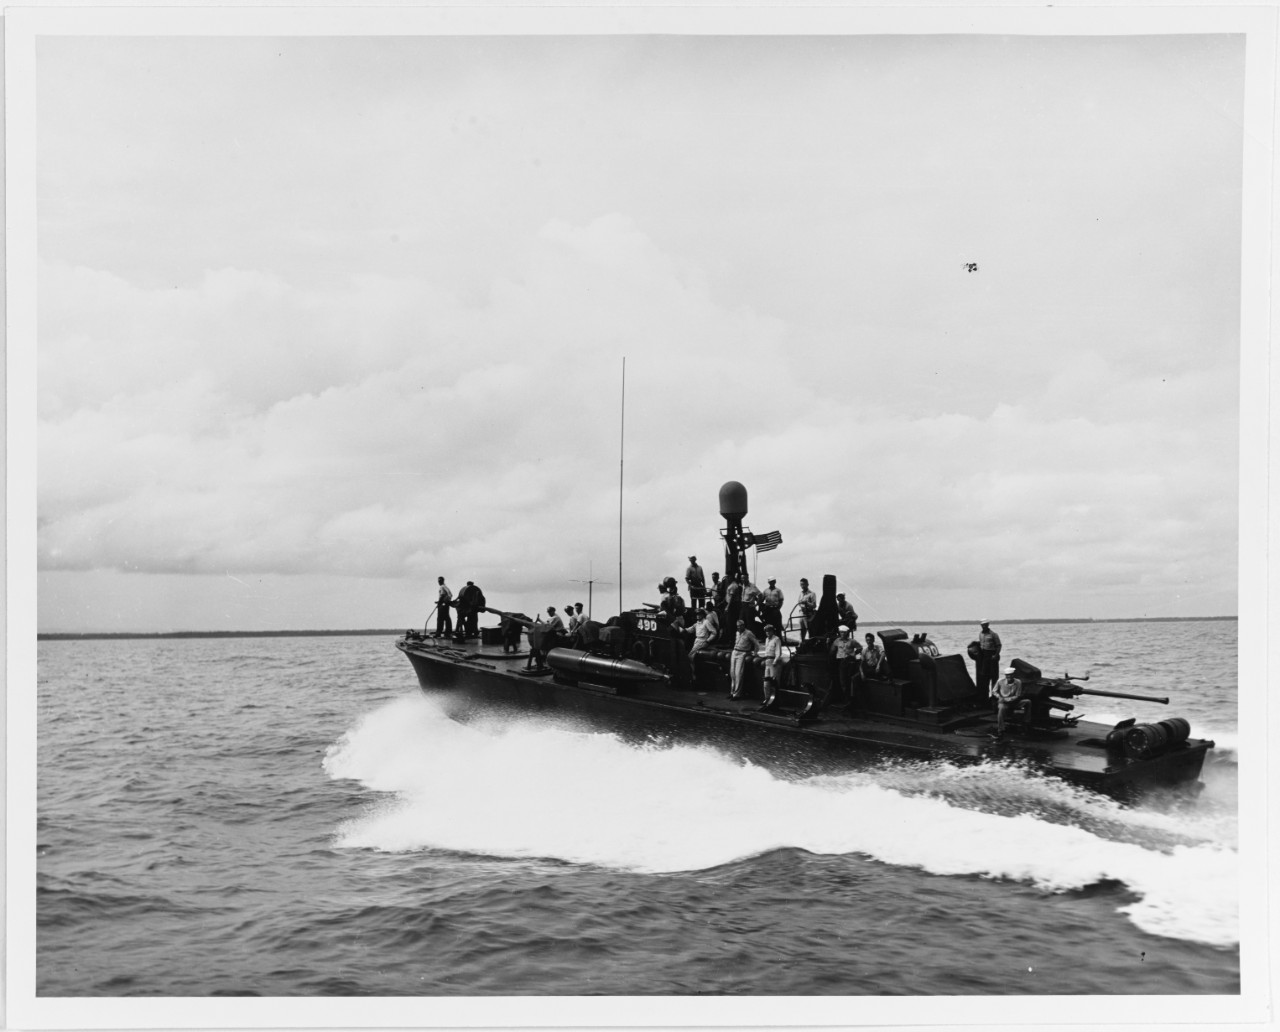 USS PT-490 with General Douglas MacArthur aboard (visible amidships), carrying him and his staff from Negros Island to Iloilo, Panay, in 1945